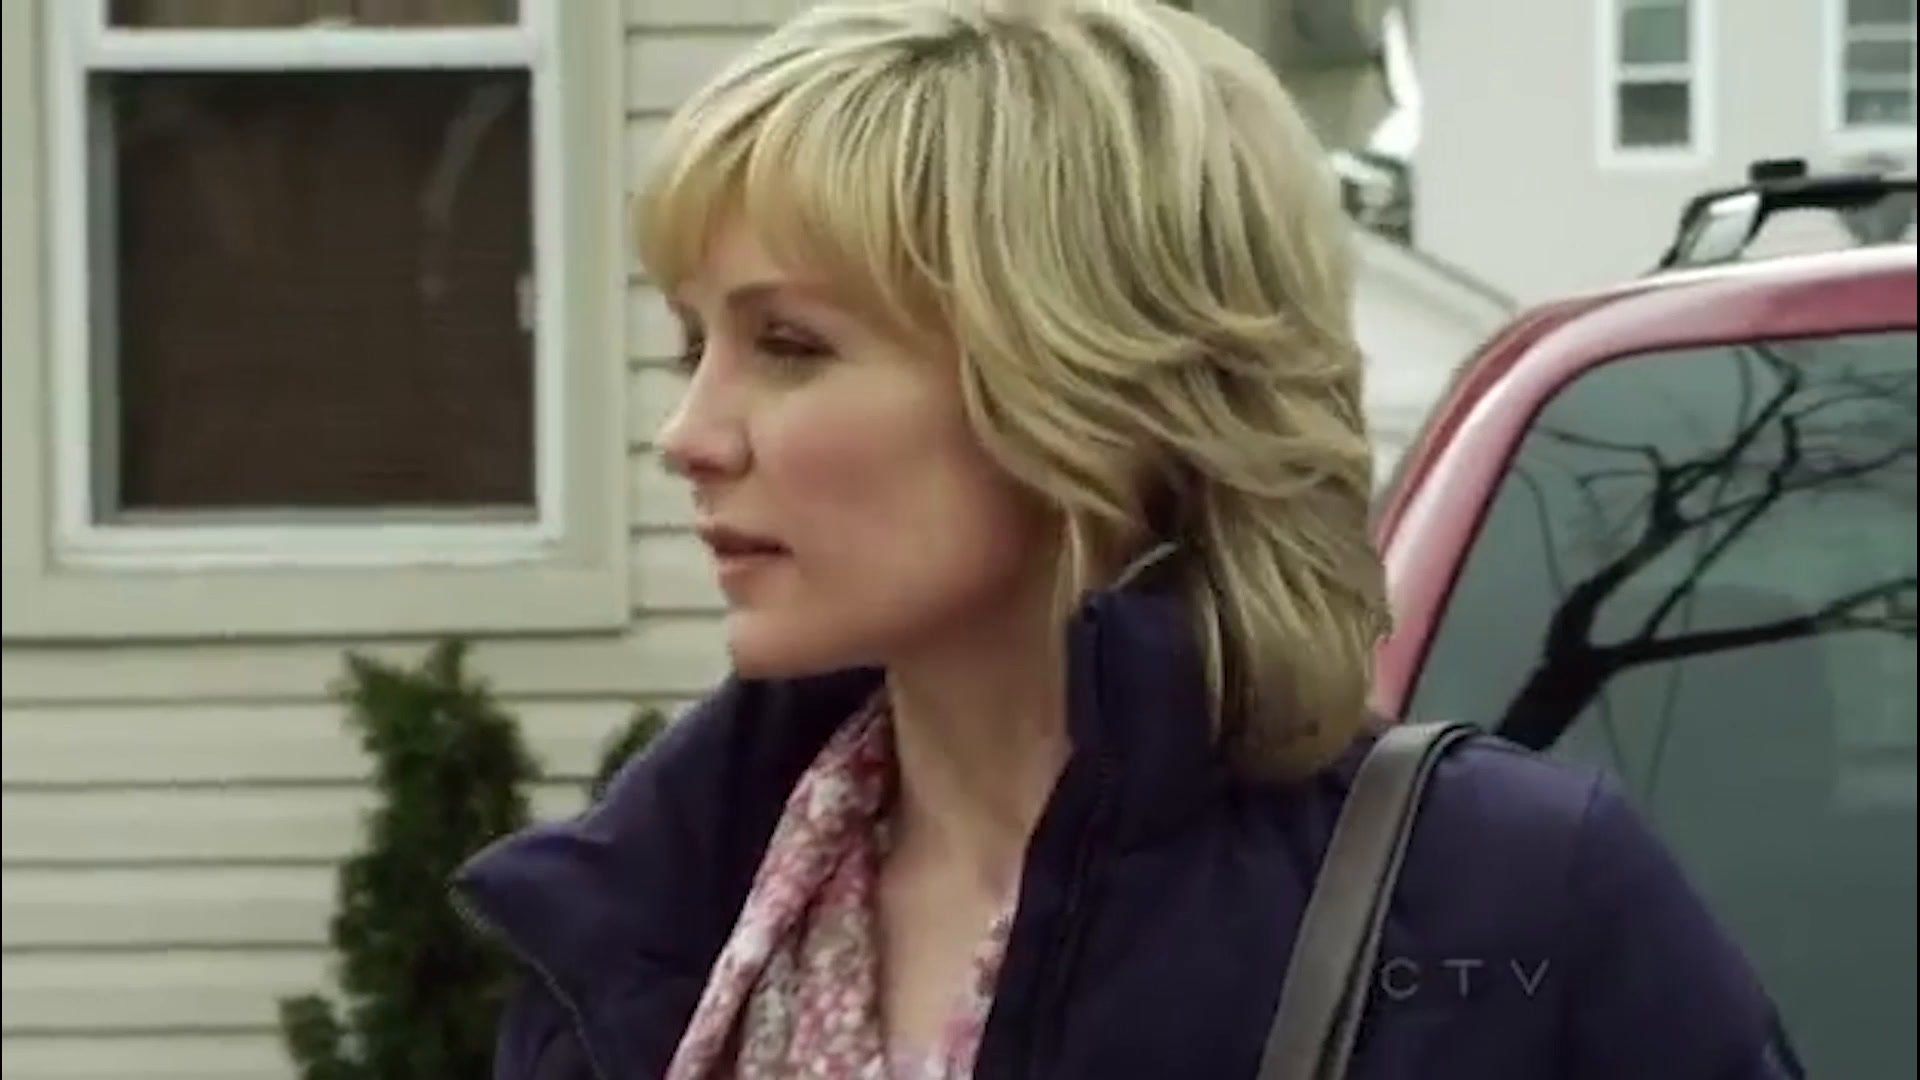 Danny Reagans Wife Is Abducted In Blue Bloods